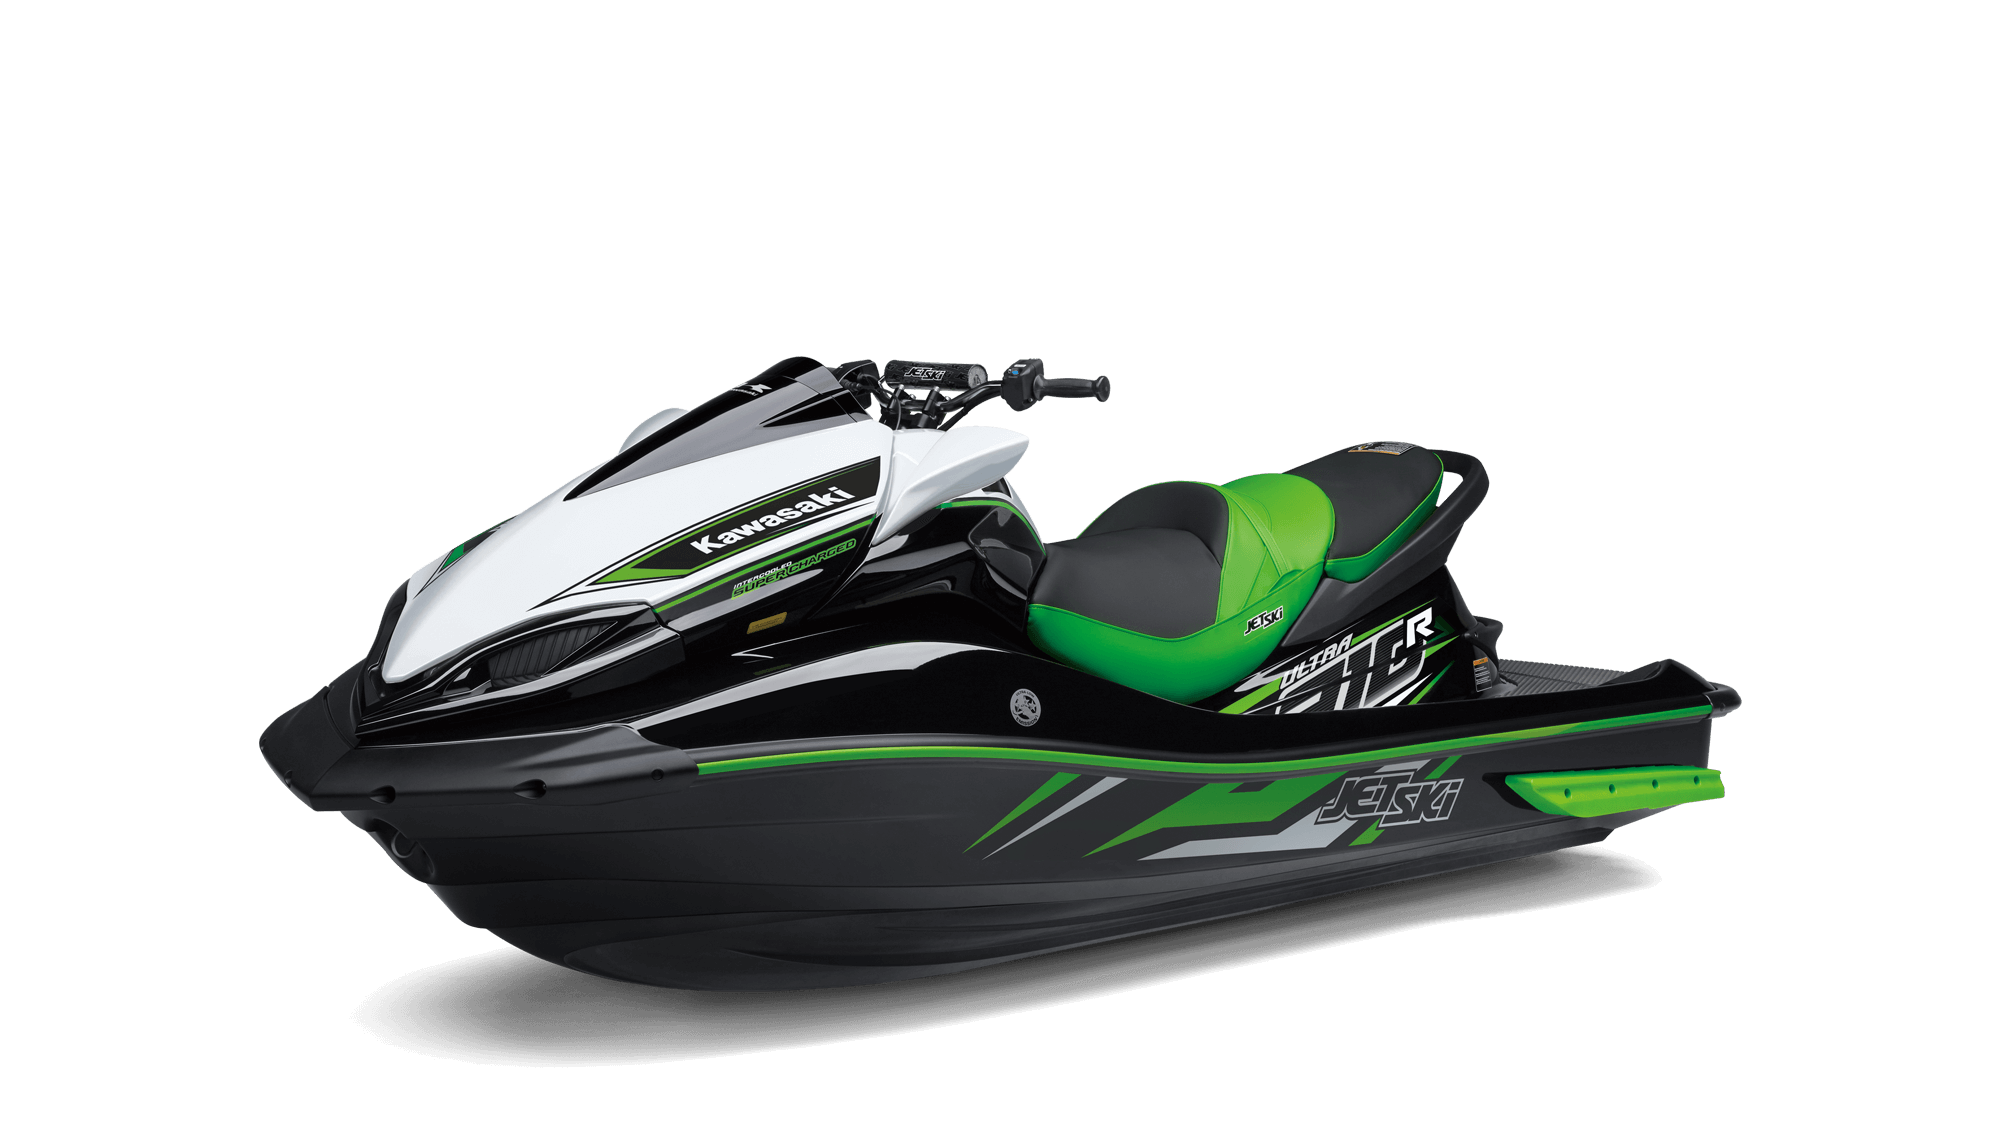 2018 JET SKI® ULTRA® 310R JET SKI® Watercraft by Kawasaki